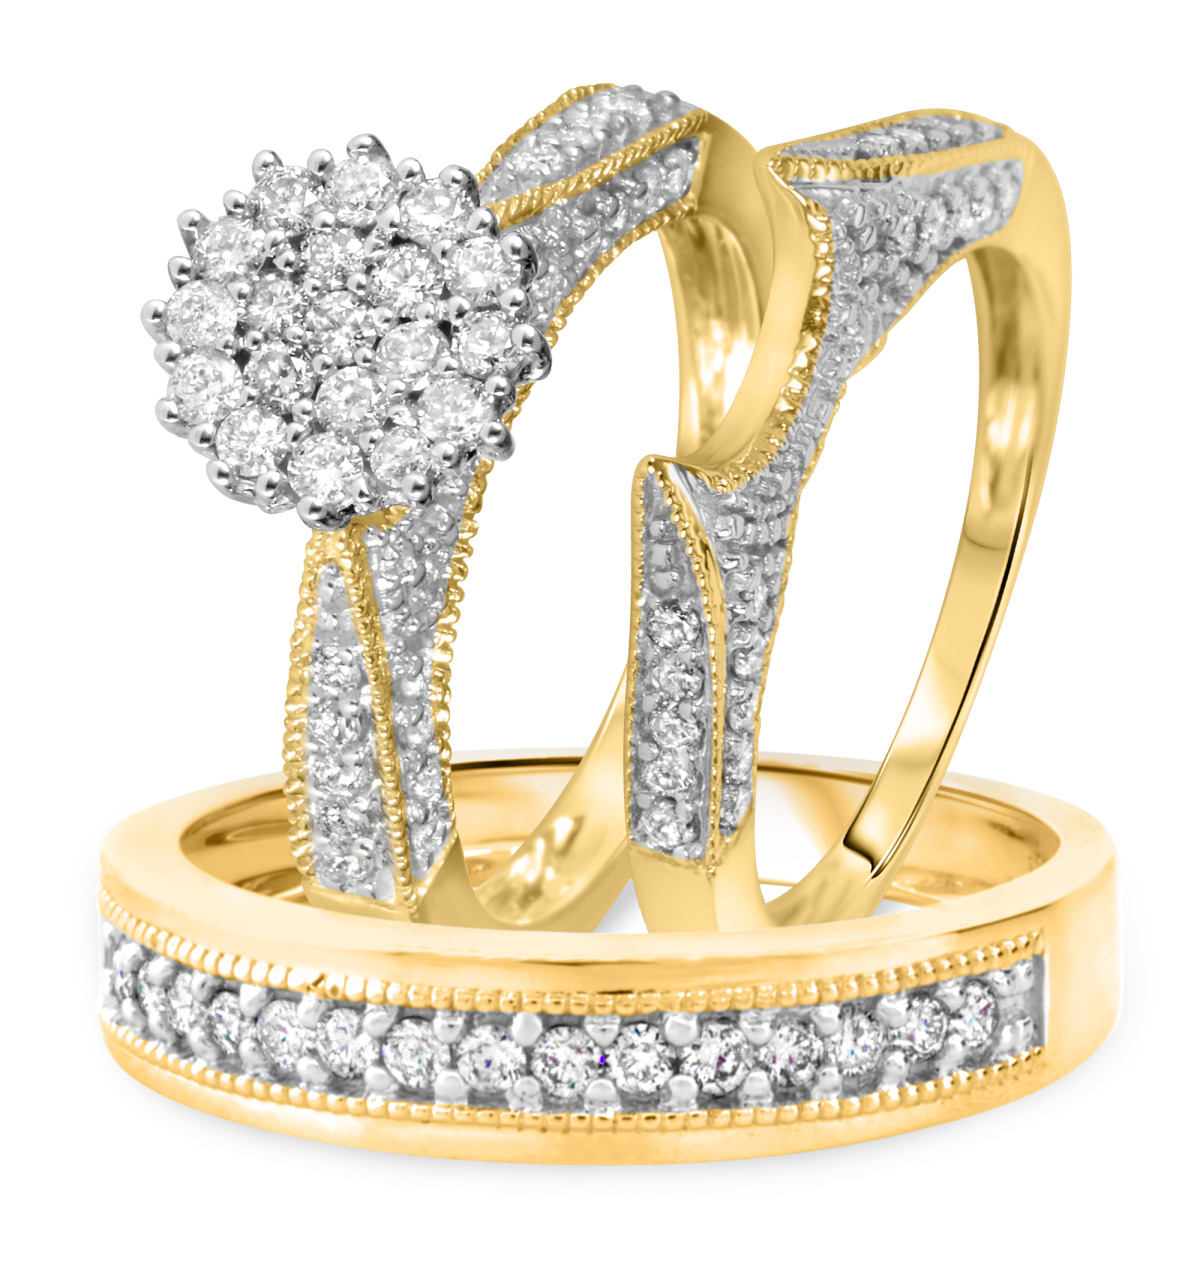 1 Carat Diamond Trio Wedding Ring Set 10K Yellow Gold